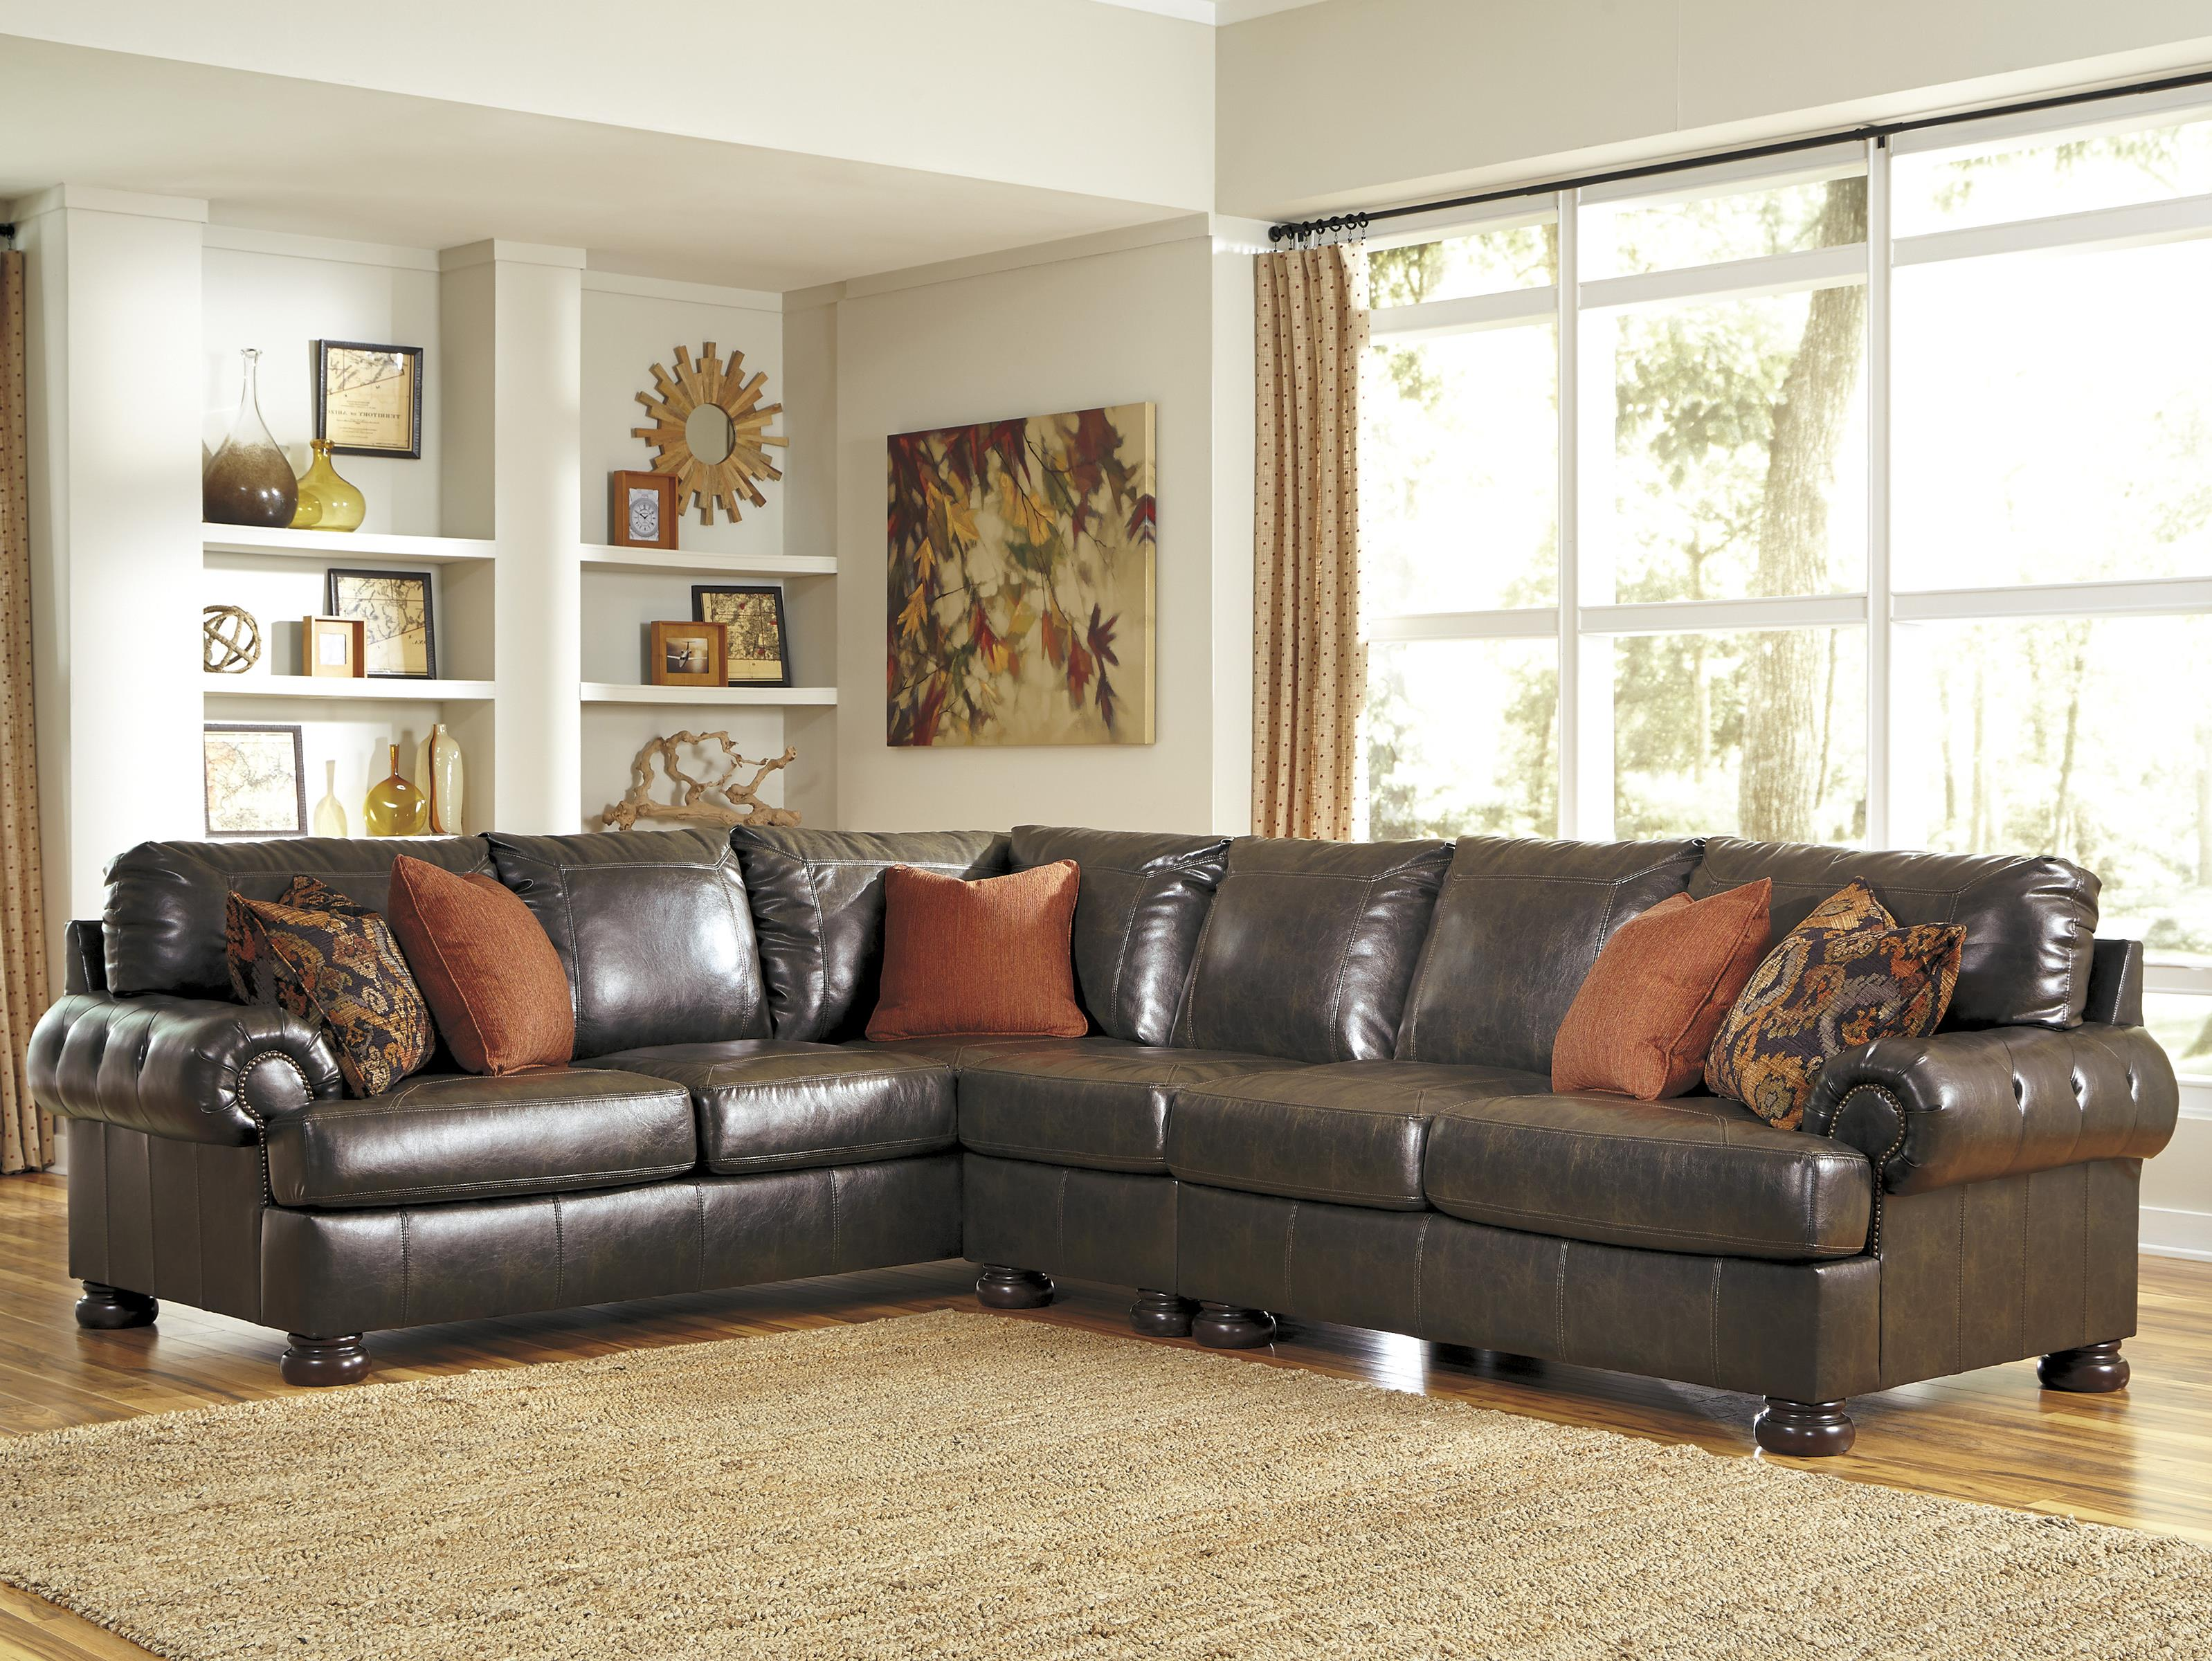 Benchcraft Nesbit DuraBlend® 3-Piece Sectional - Item Number: 3160066+46+56